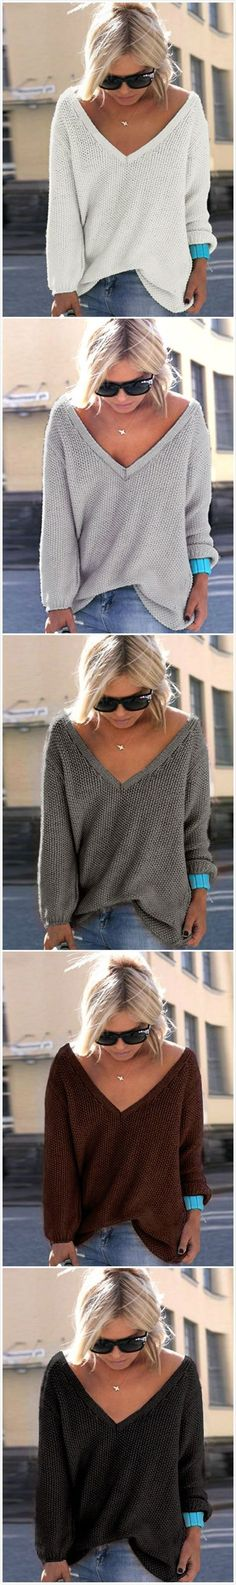 Love this sweater for summer-- looks like it's light weight.   Would love to wear this with jeans.